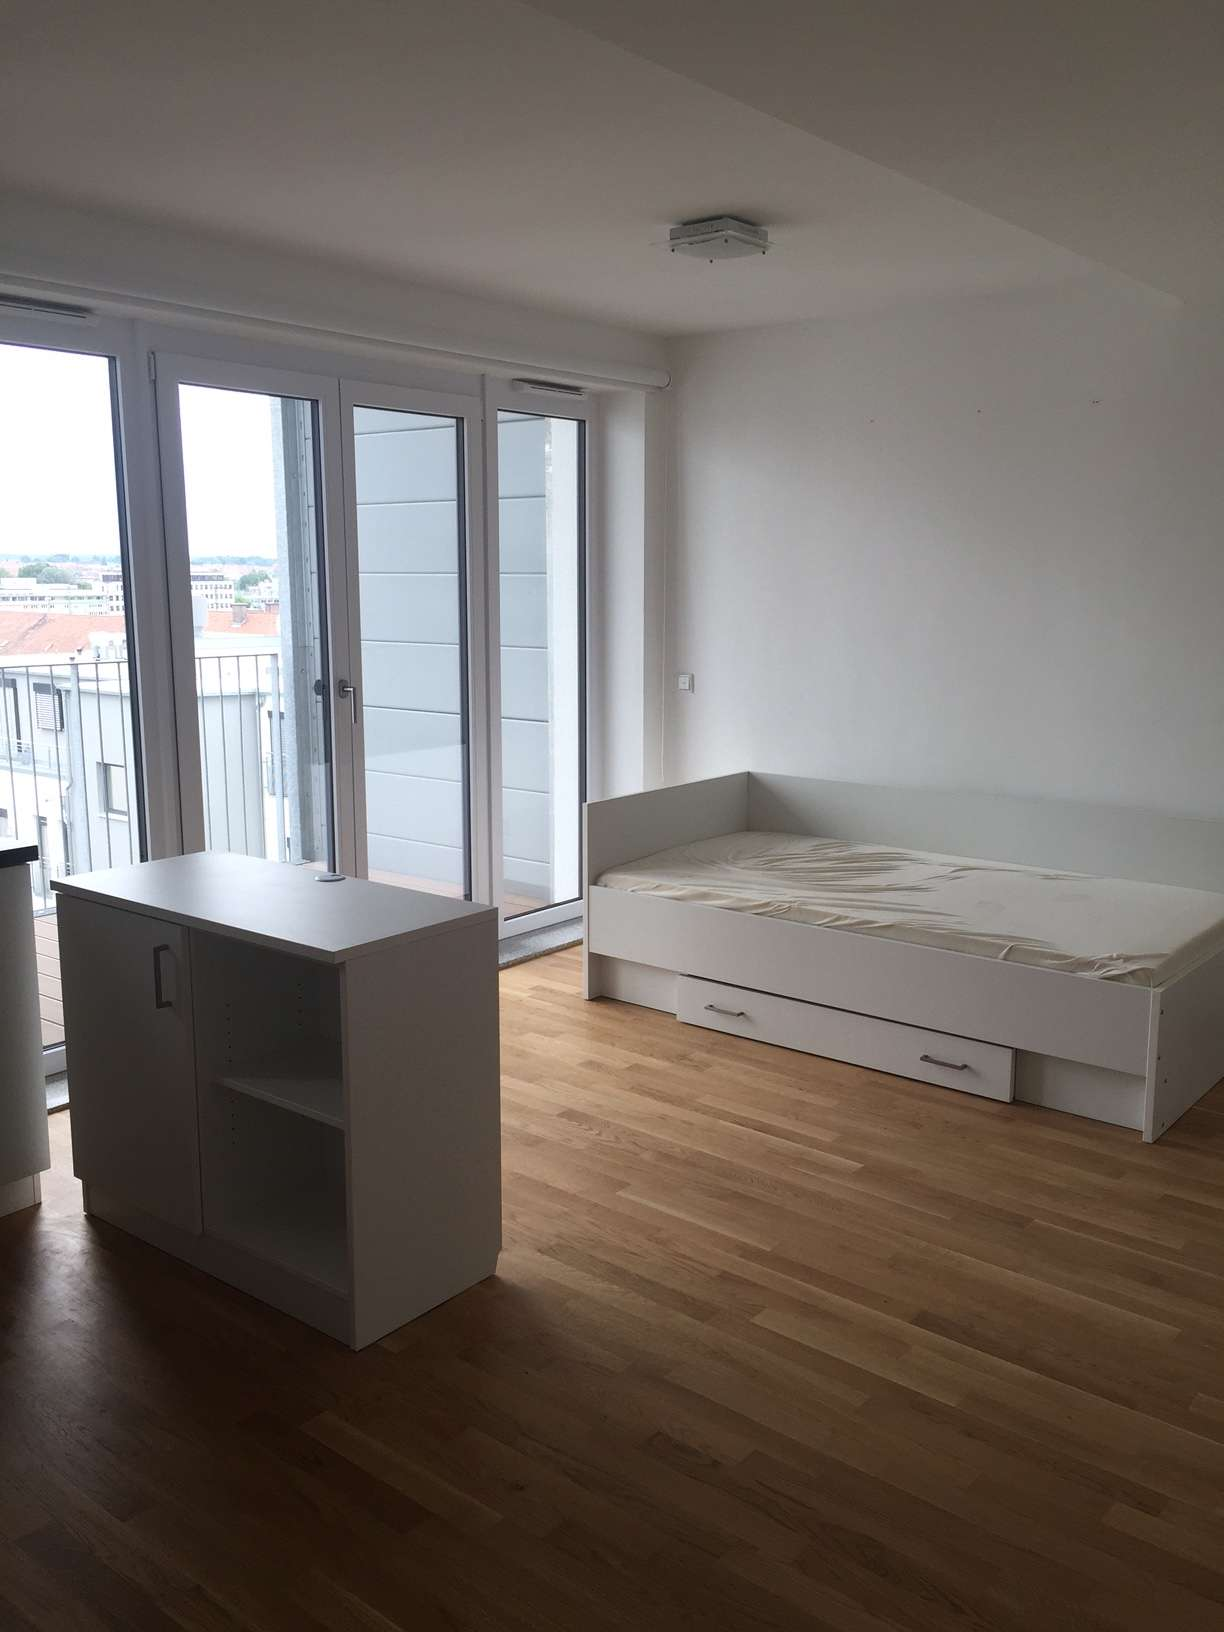 ! Schickes Studentenapartment in Bestlage !